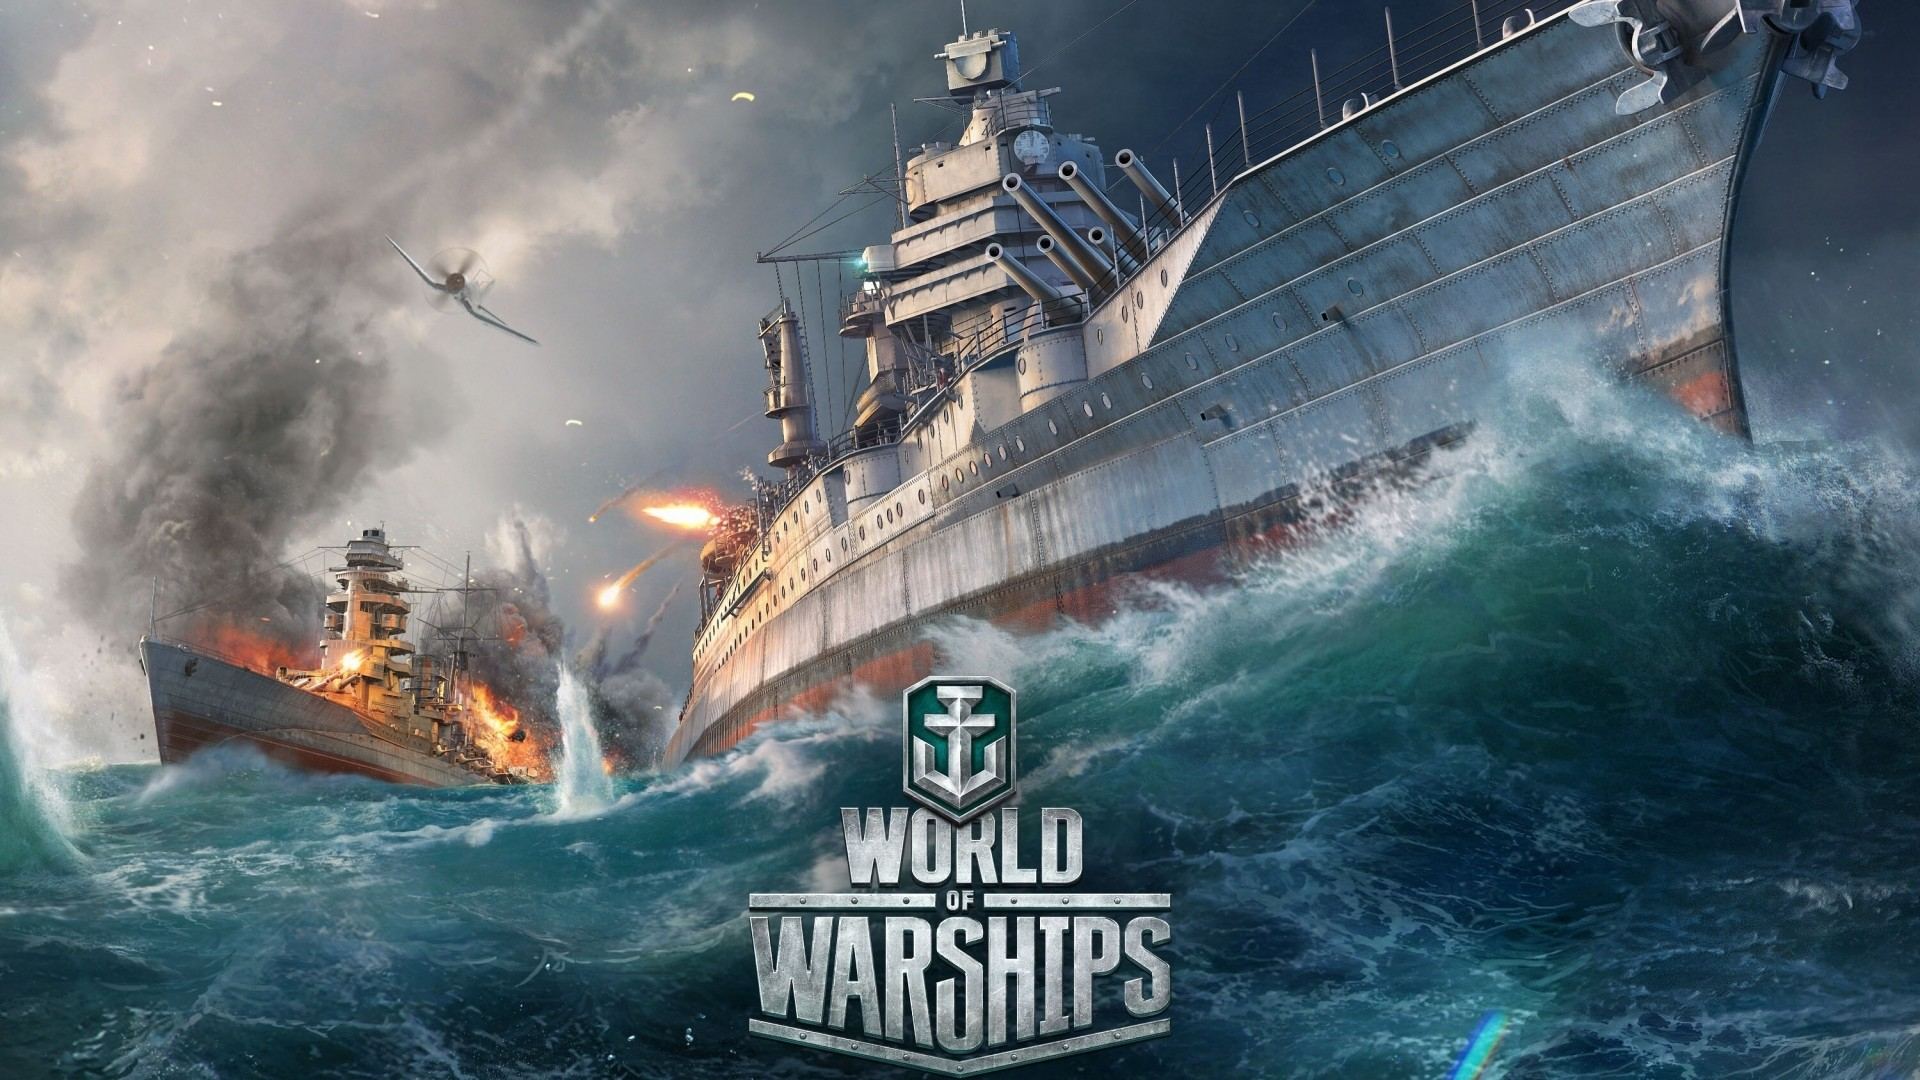 1920x1080 Preview Wallpaper World Of Warships Ship Explosion